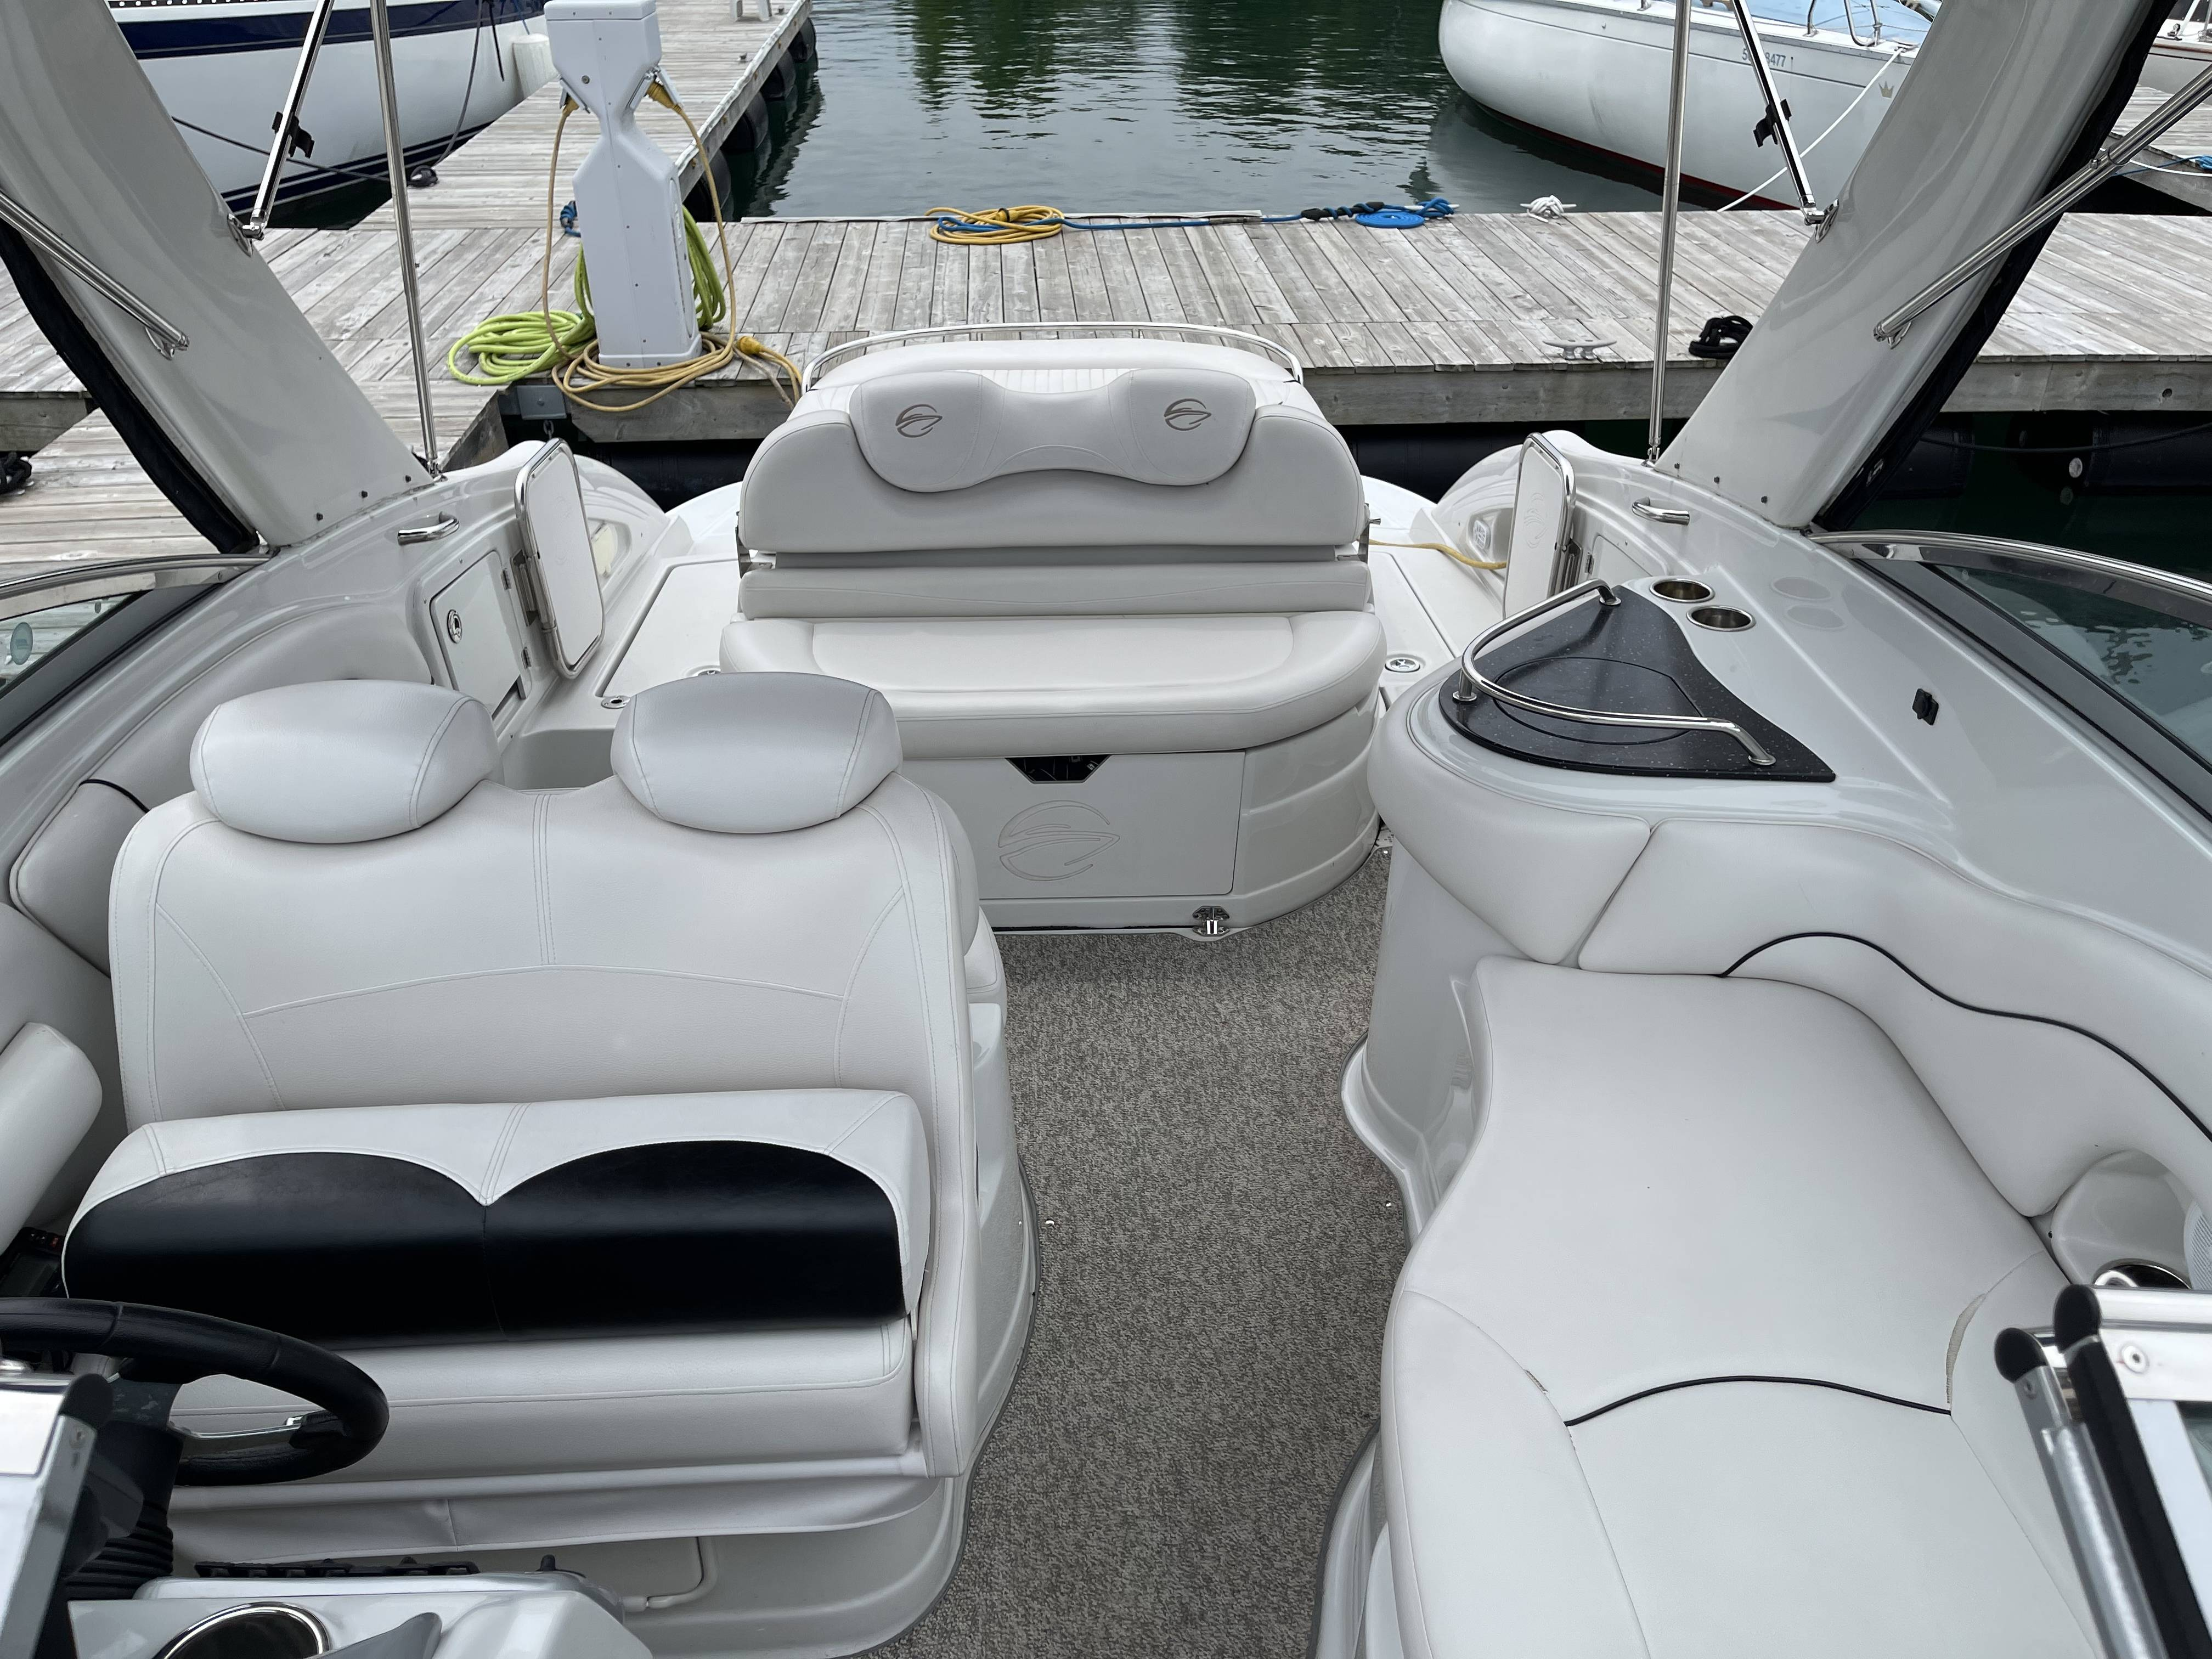 2011 Crownline boat for sale, model of the boat is 320 LS & Image # 18 of 55